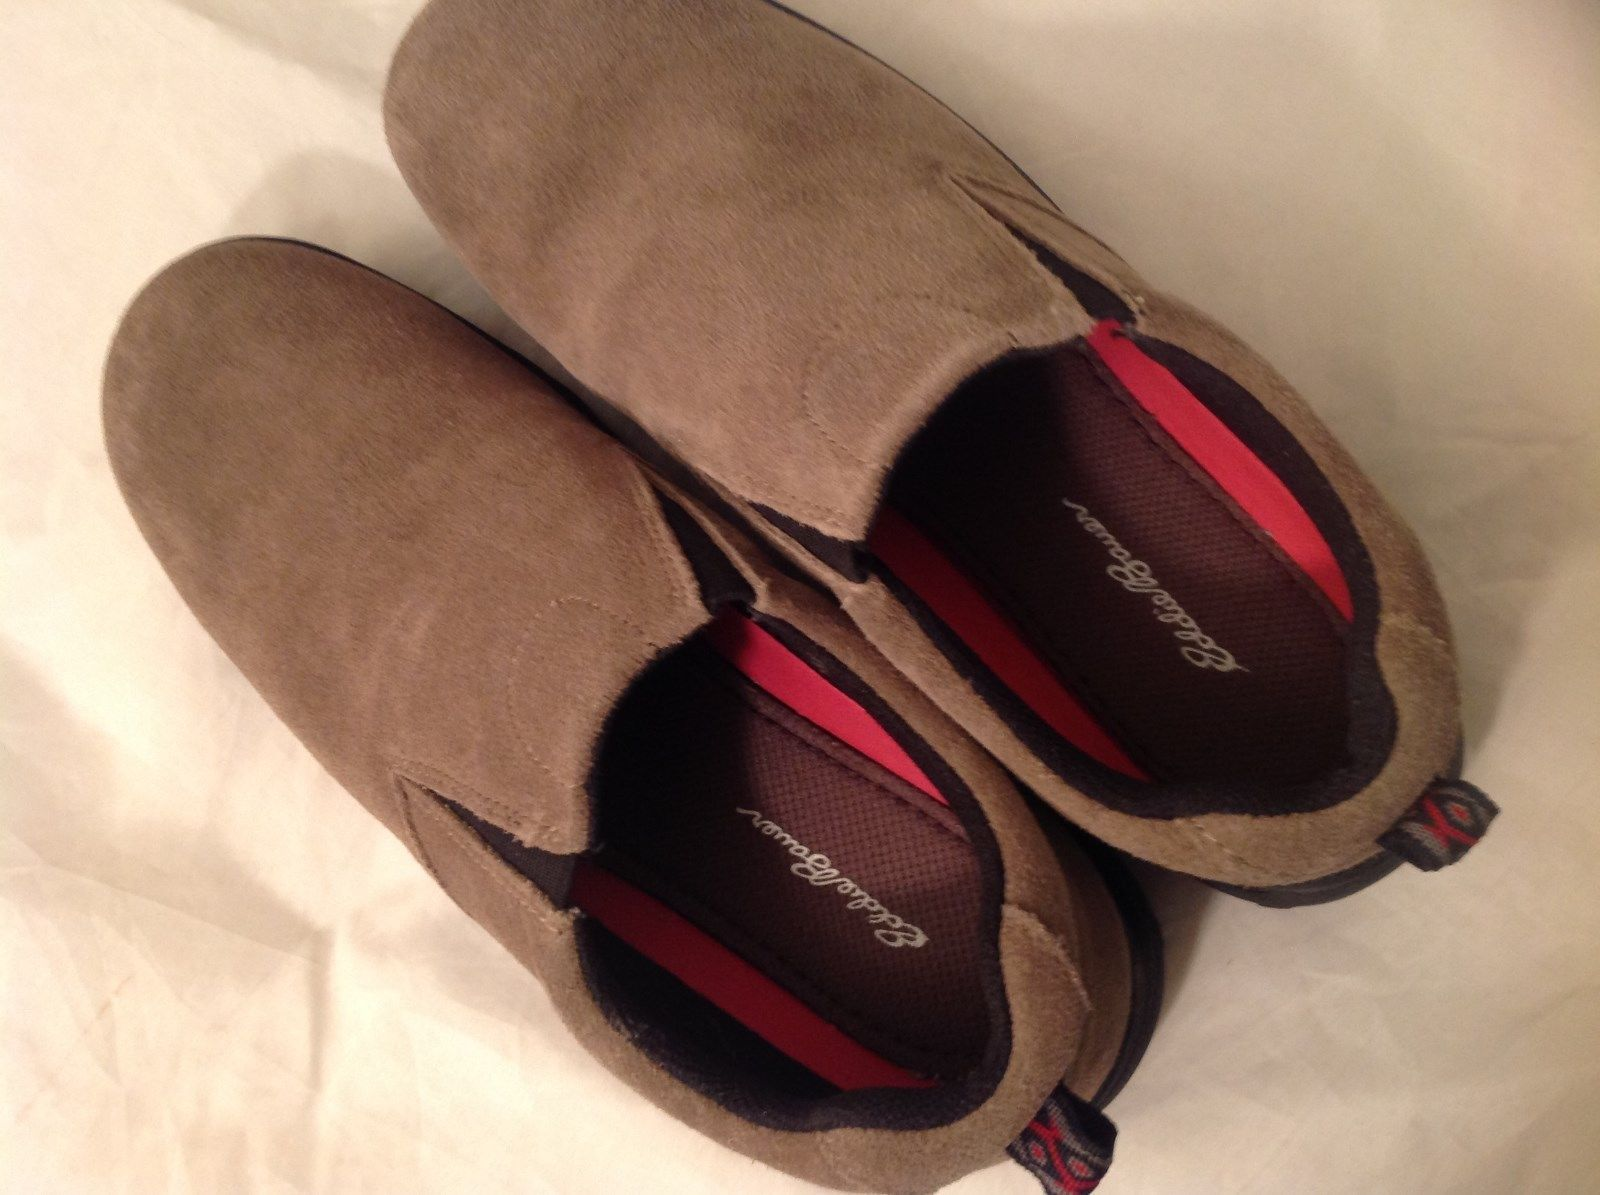 Eddie Bauer Brown Suede Like Material Casual Slip On Shoes Size 5 US Rubber Sole